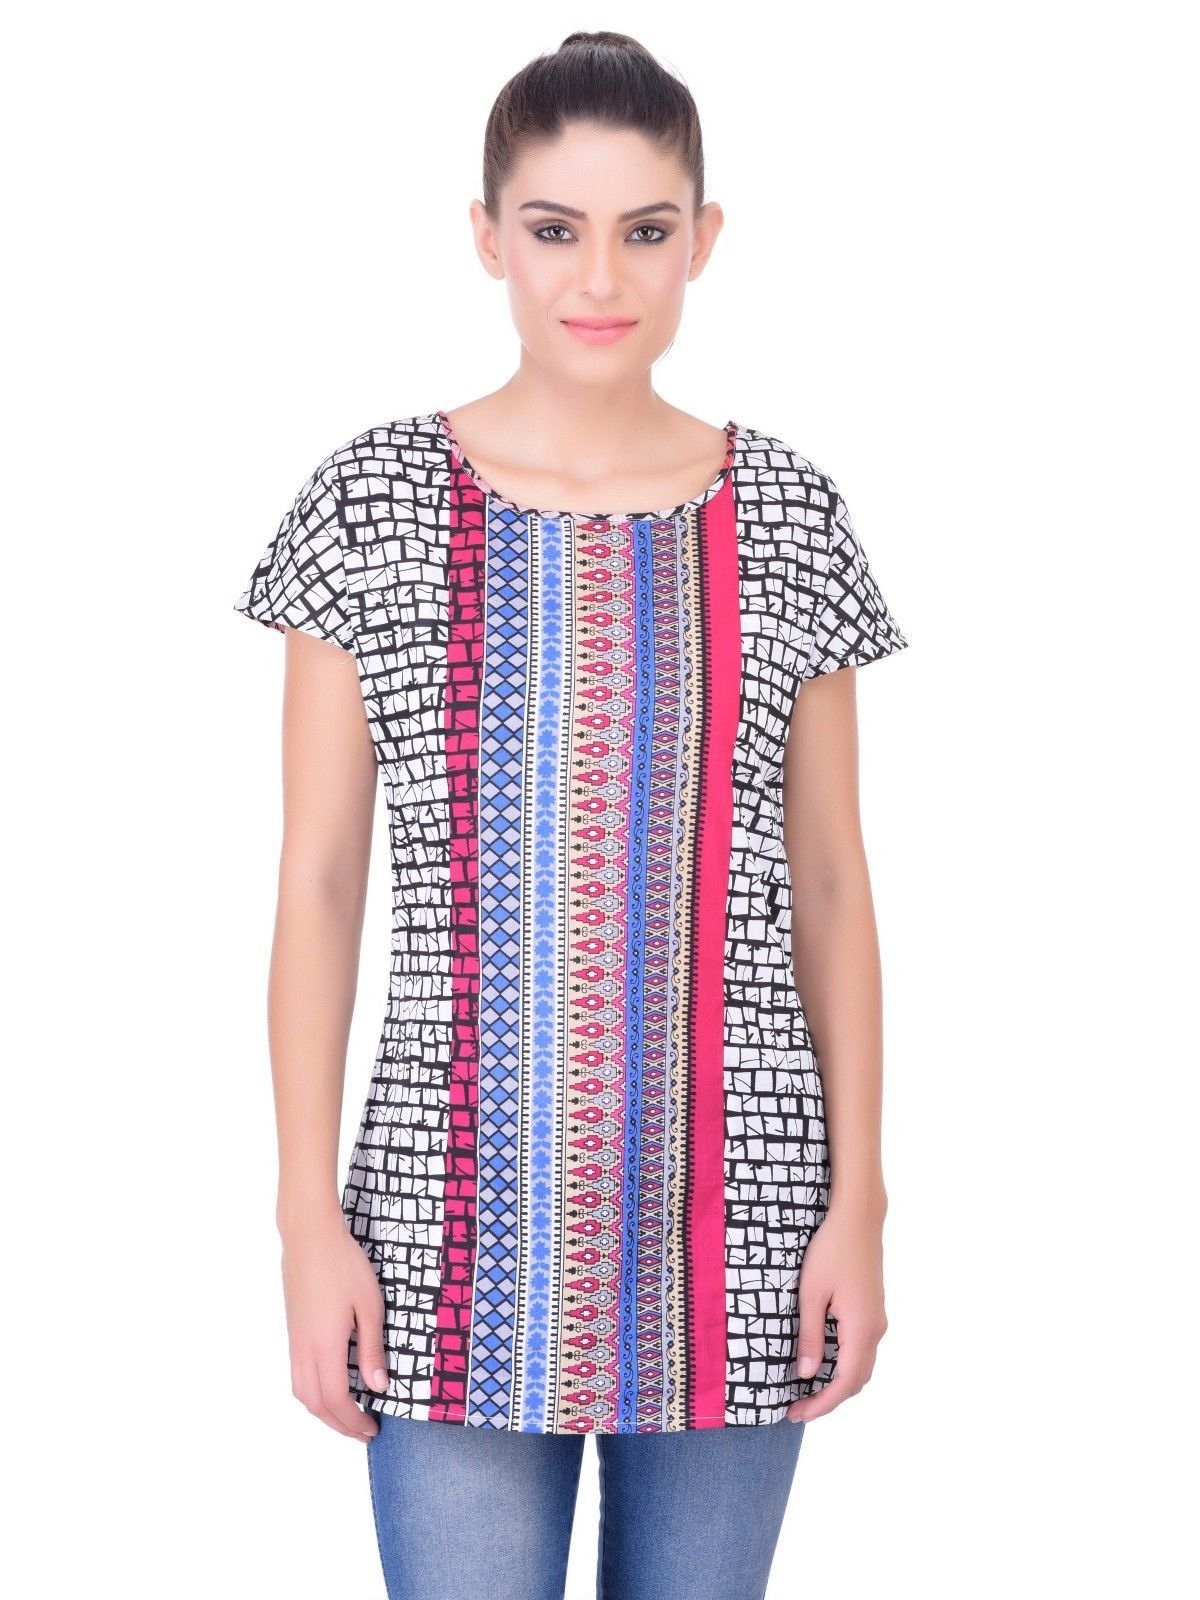 Multicolor Laabha New Top Collation Blouse T-shirt Stylish Printed Shirts Women